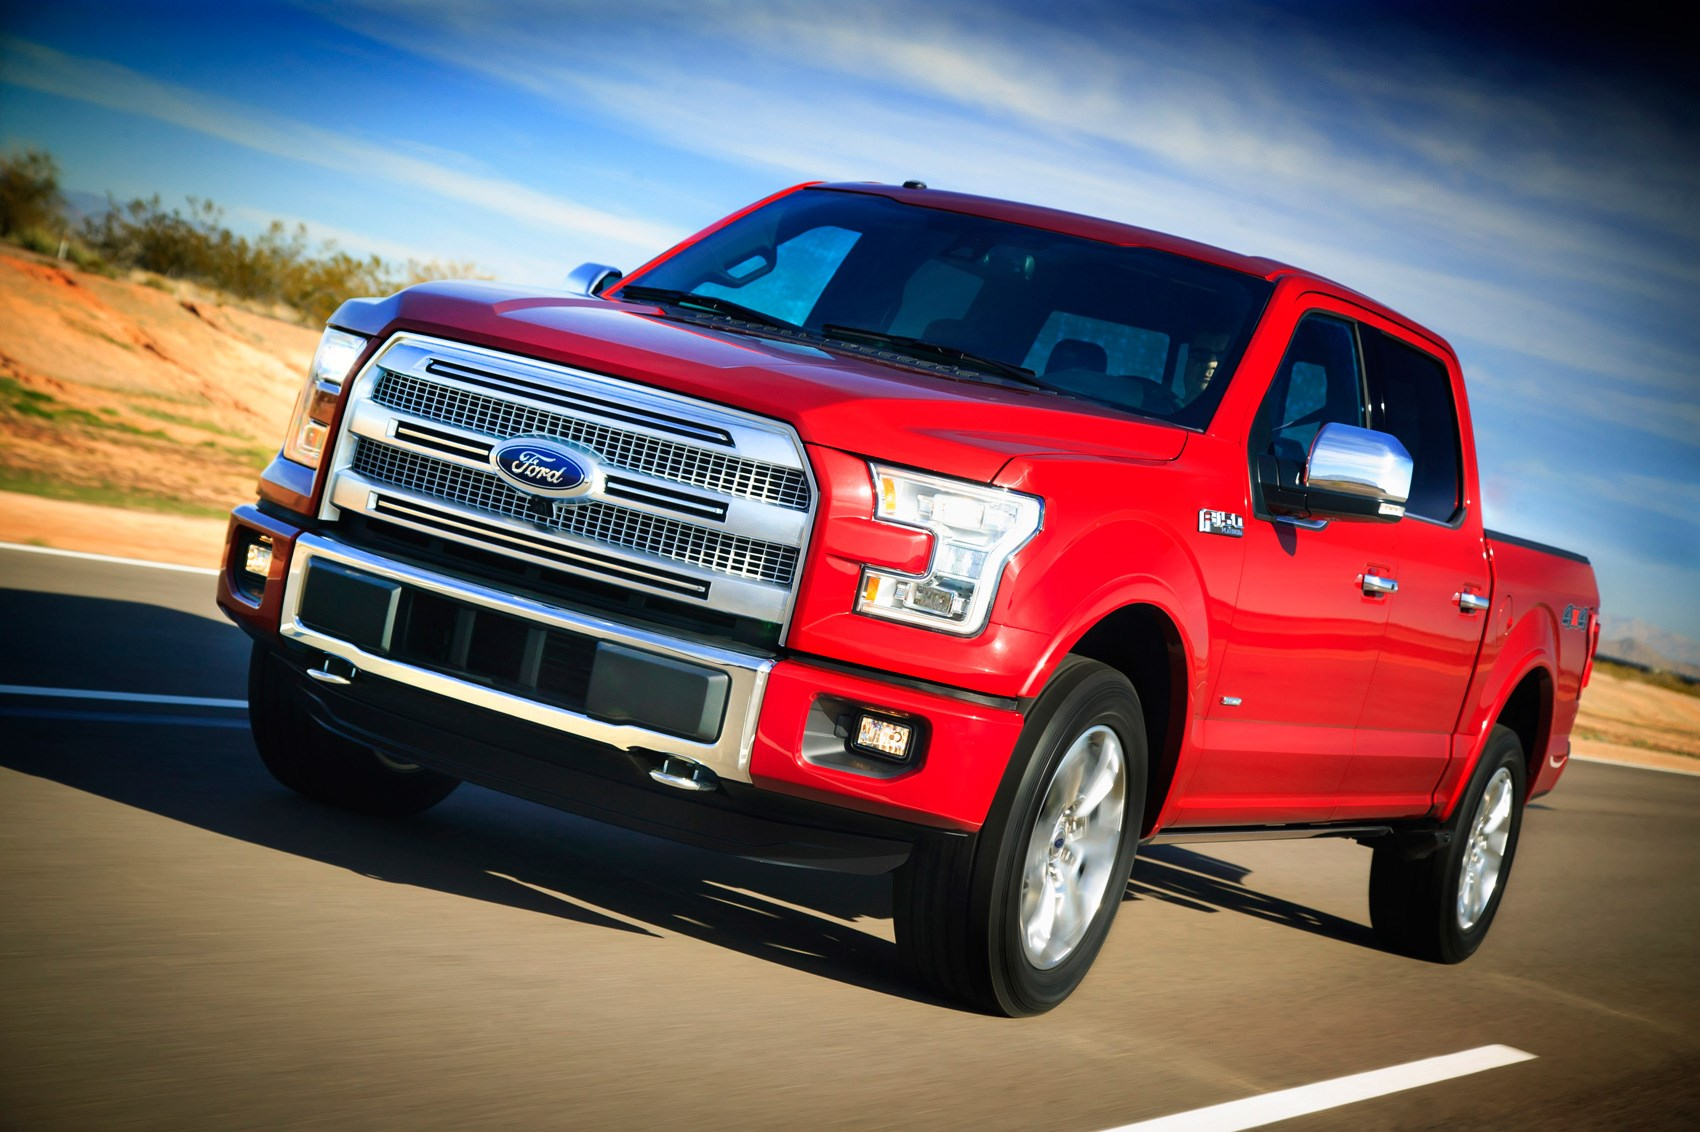 Ford sells an F-series truck every 41 seconds ... & Ford F-150 Platinum 4x4 SuperCrew (2016) review by CAR Magazine markmcfarlin.com